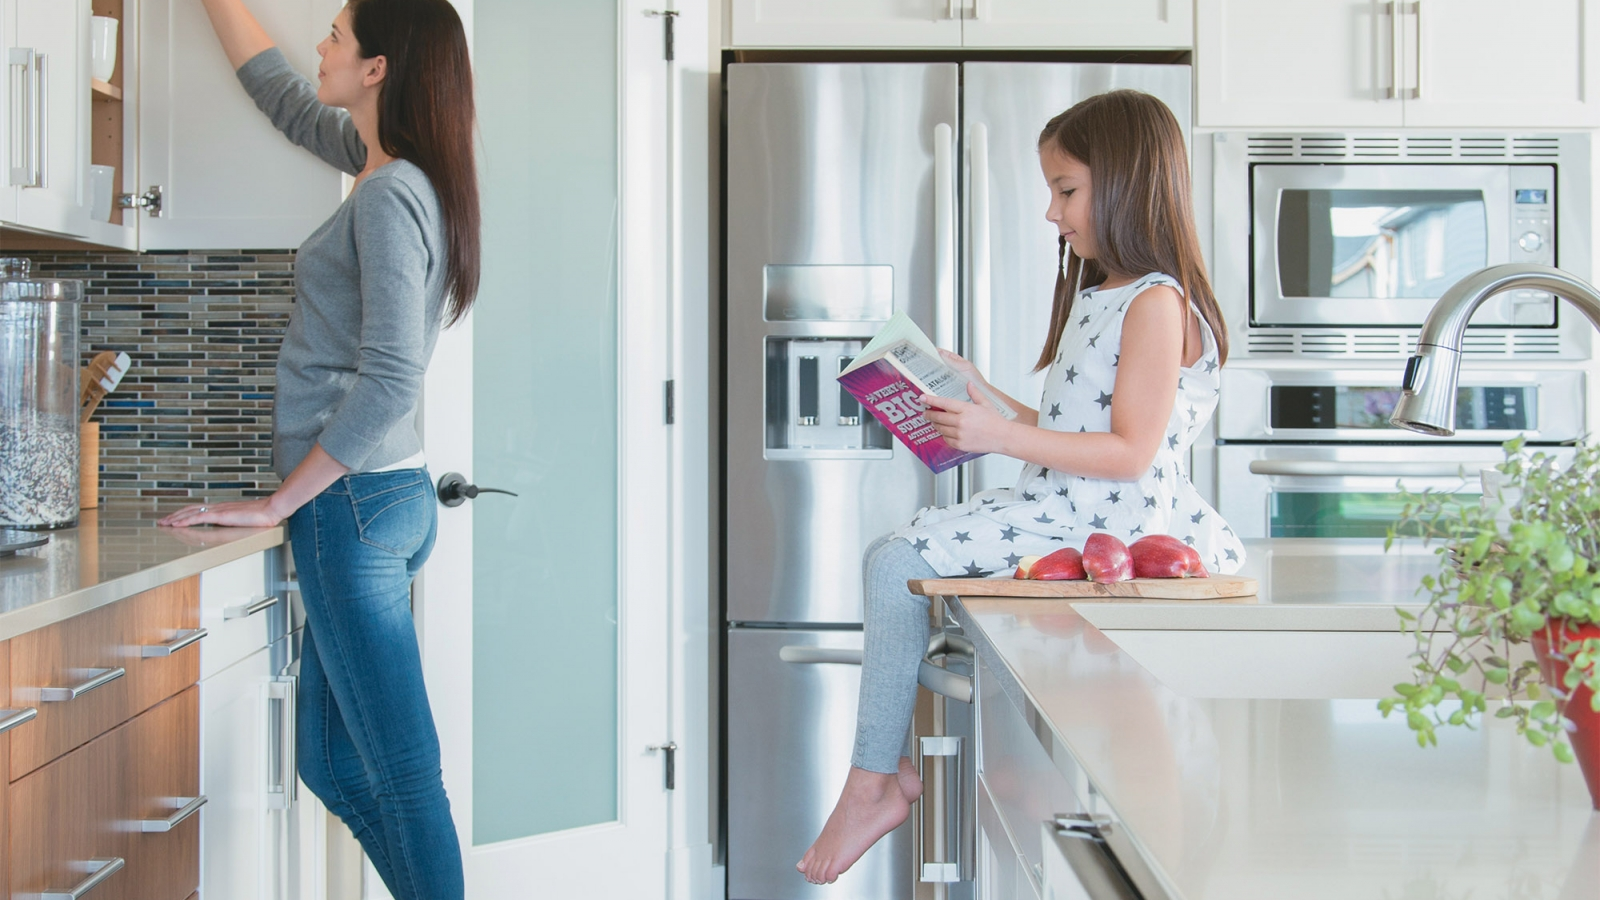 mother reaching into a kitchen cabinet while daughter sits on kitchen island reading